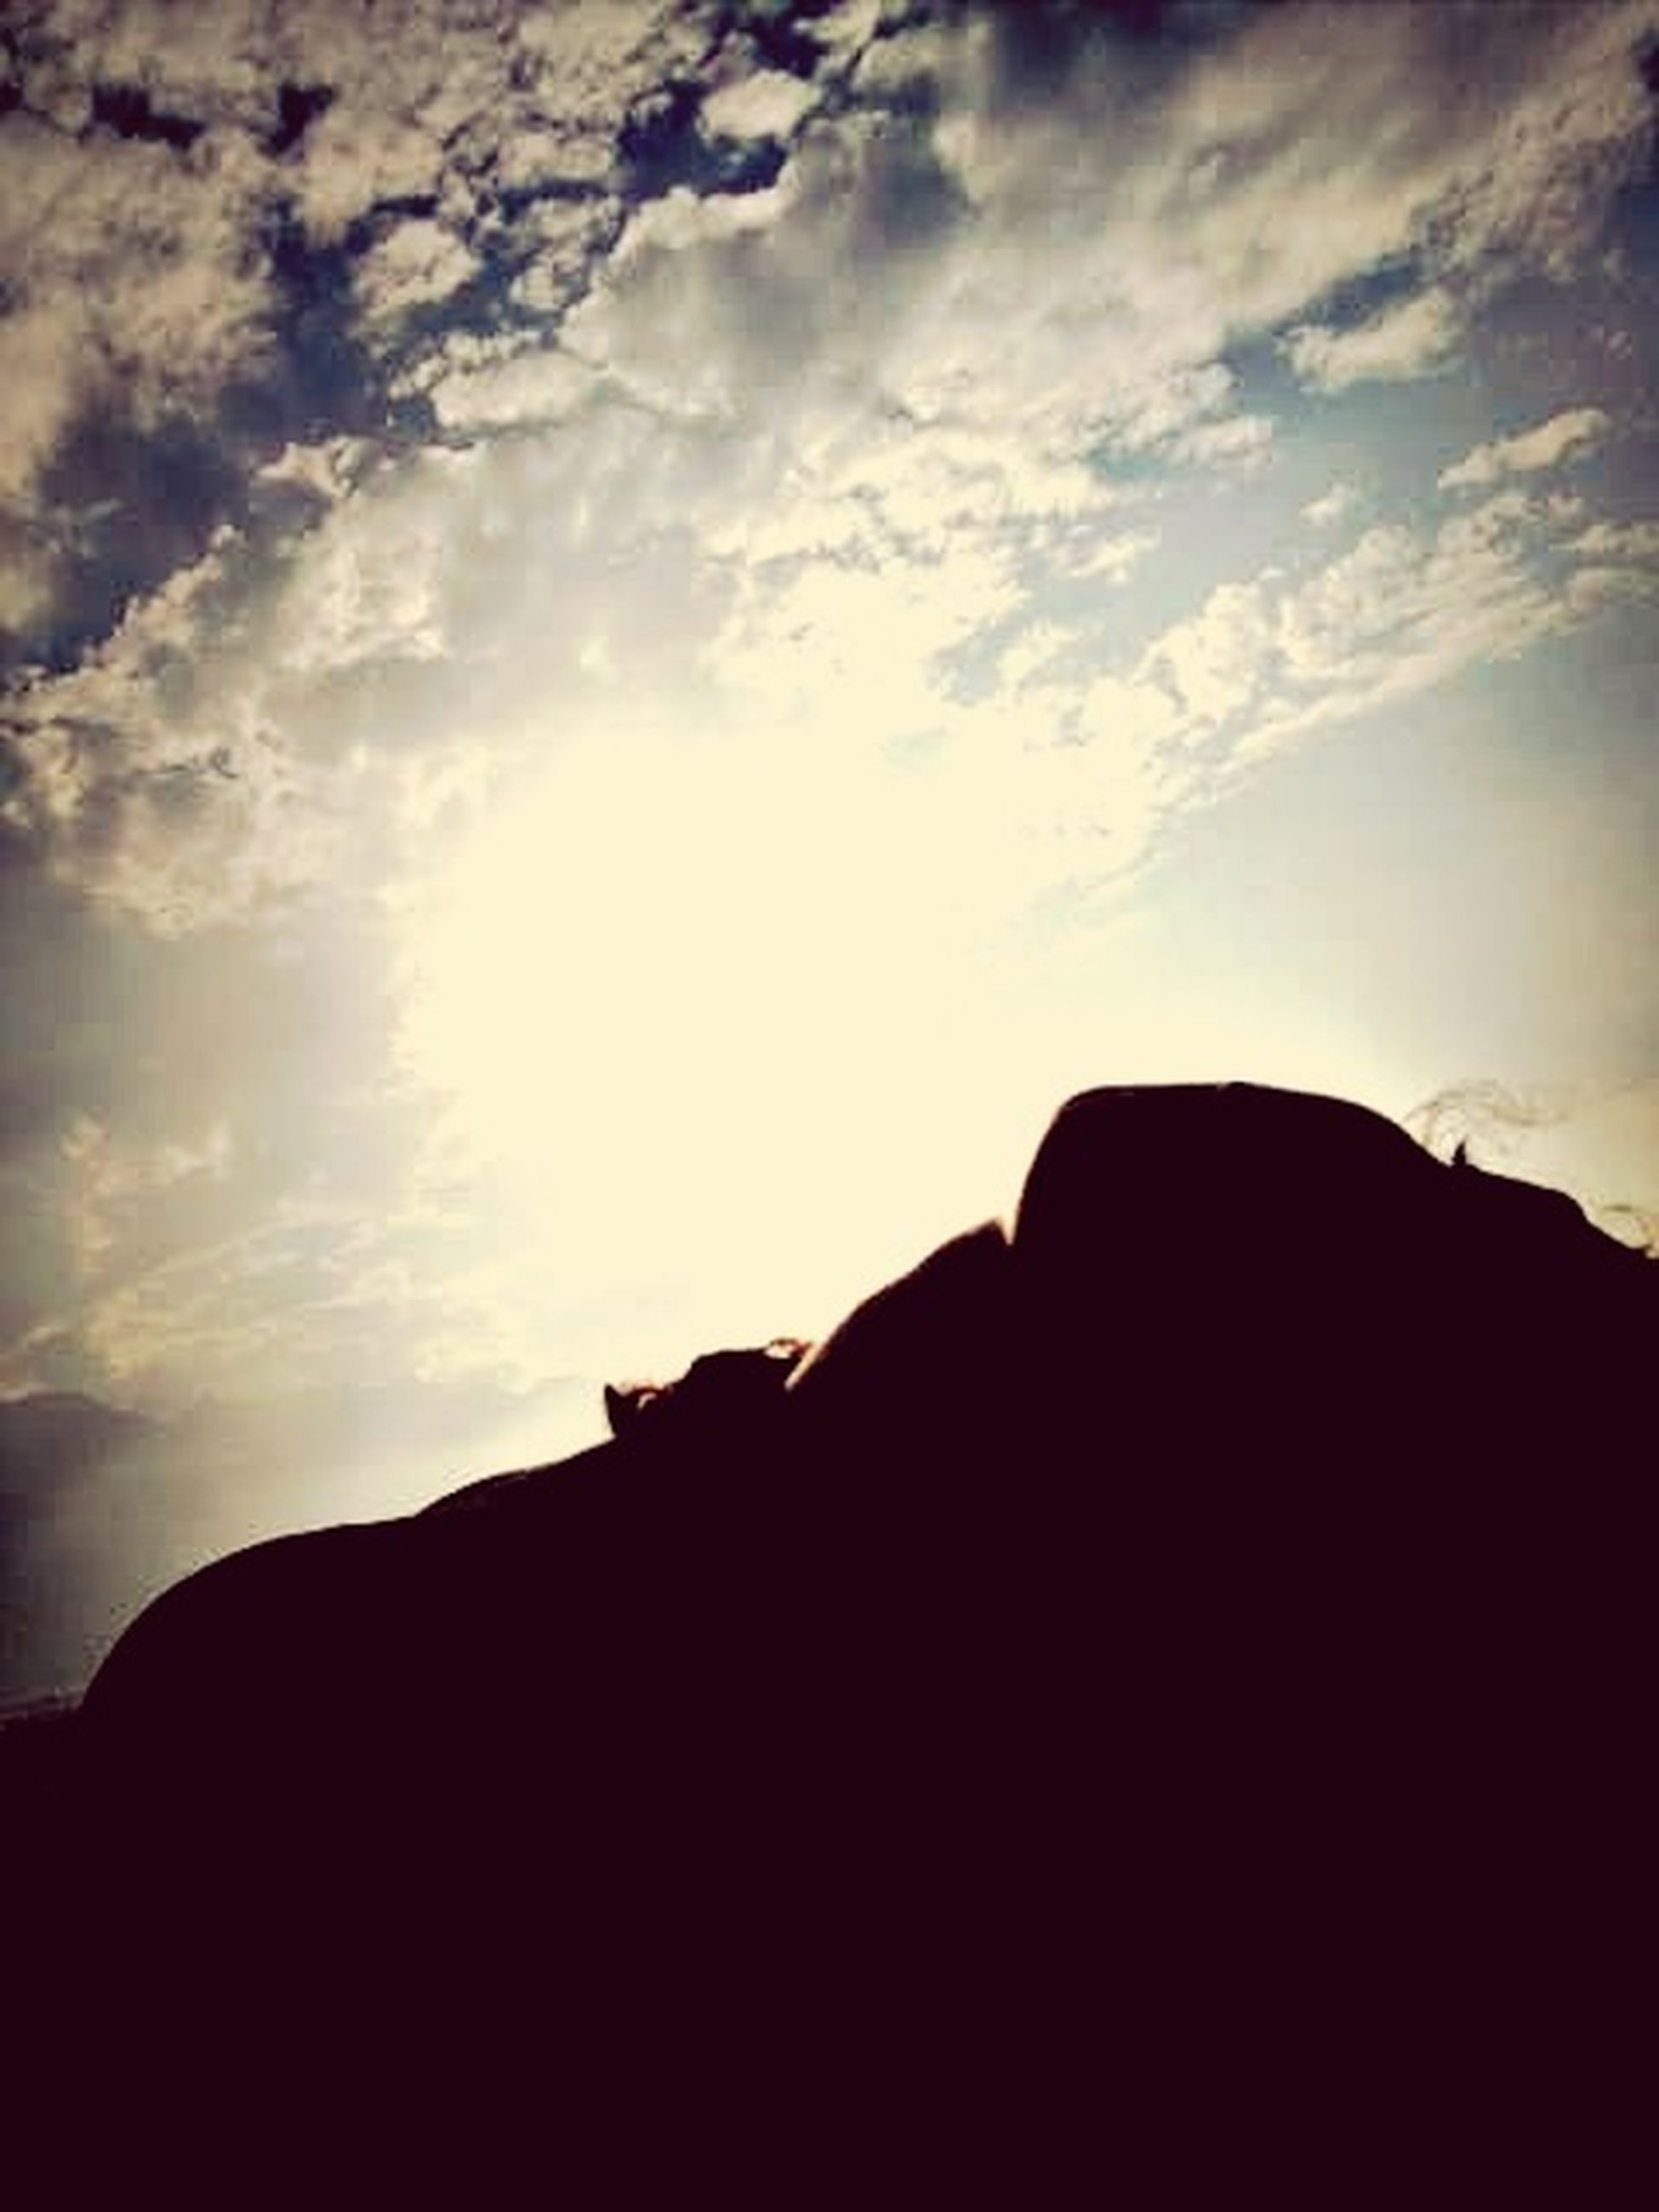 silhouette, sky, mountain, sunset, low angle view, cloud - sky, tranquility, scenics, tranquil scene, outline, beauty in nature, cloud, nature, dark, dusk, built structure, mountain range, outdoors, sunlight, idyllic